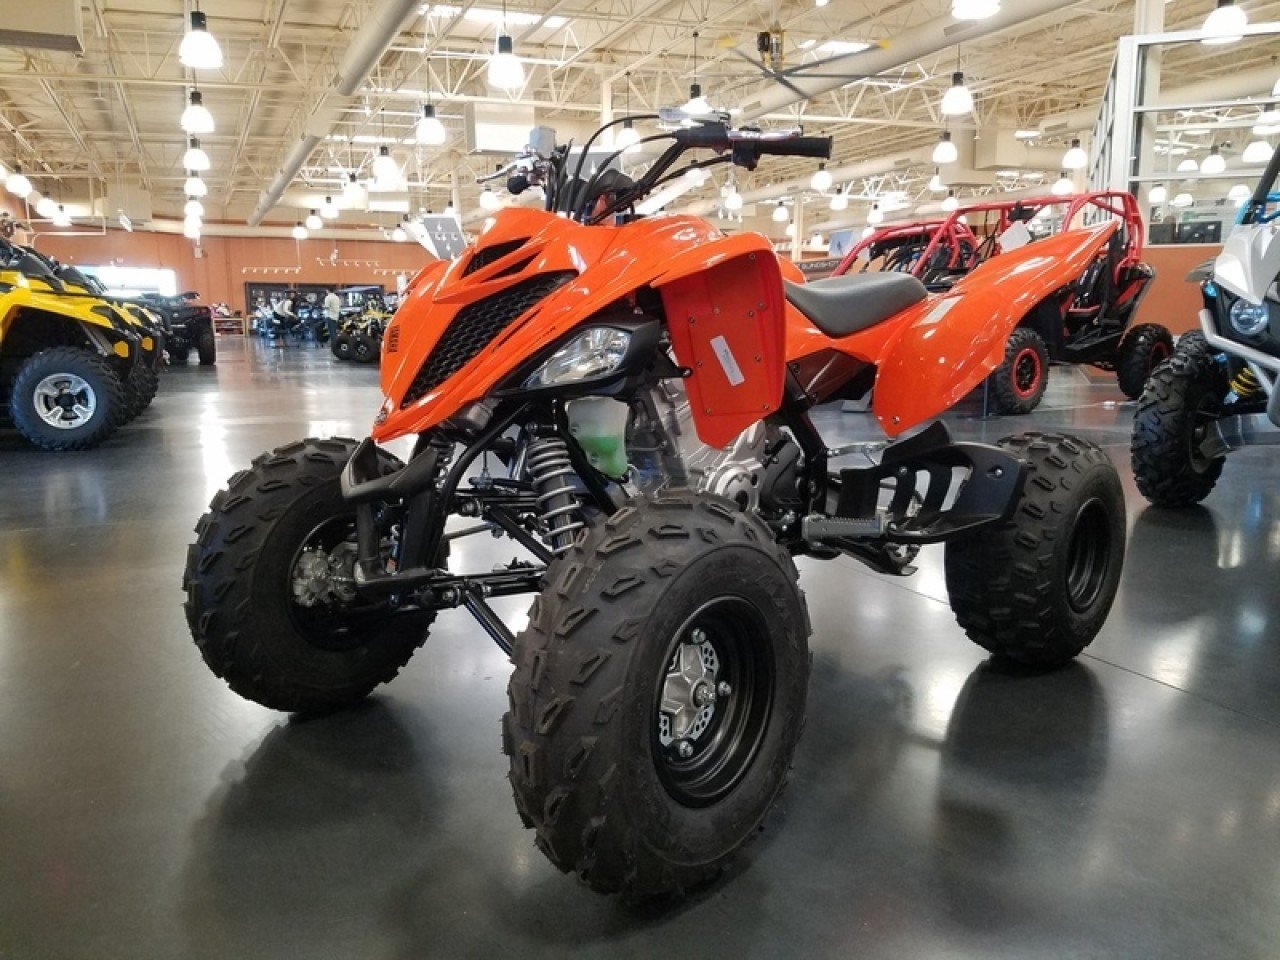 2017 Yamaha Raptor 700 for sale near Chandler, Arizona ...